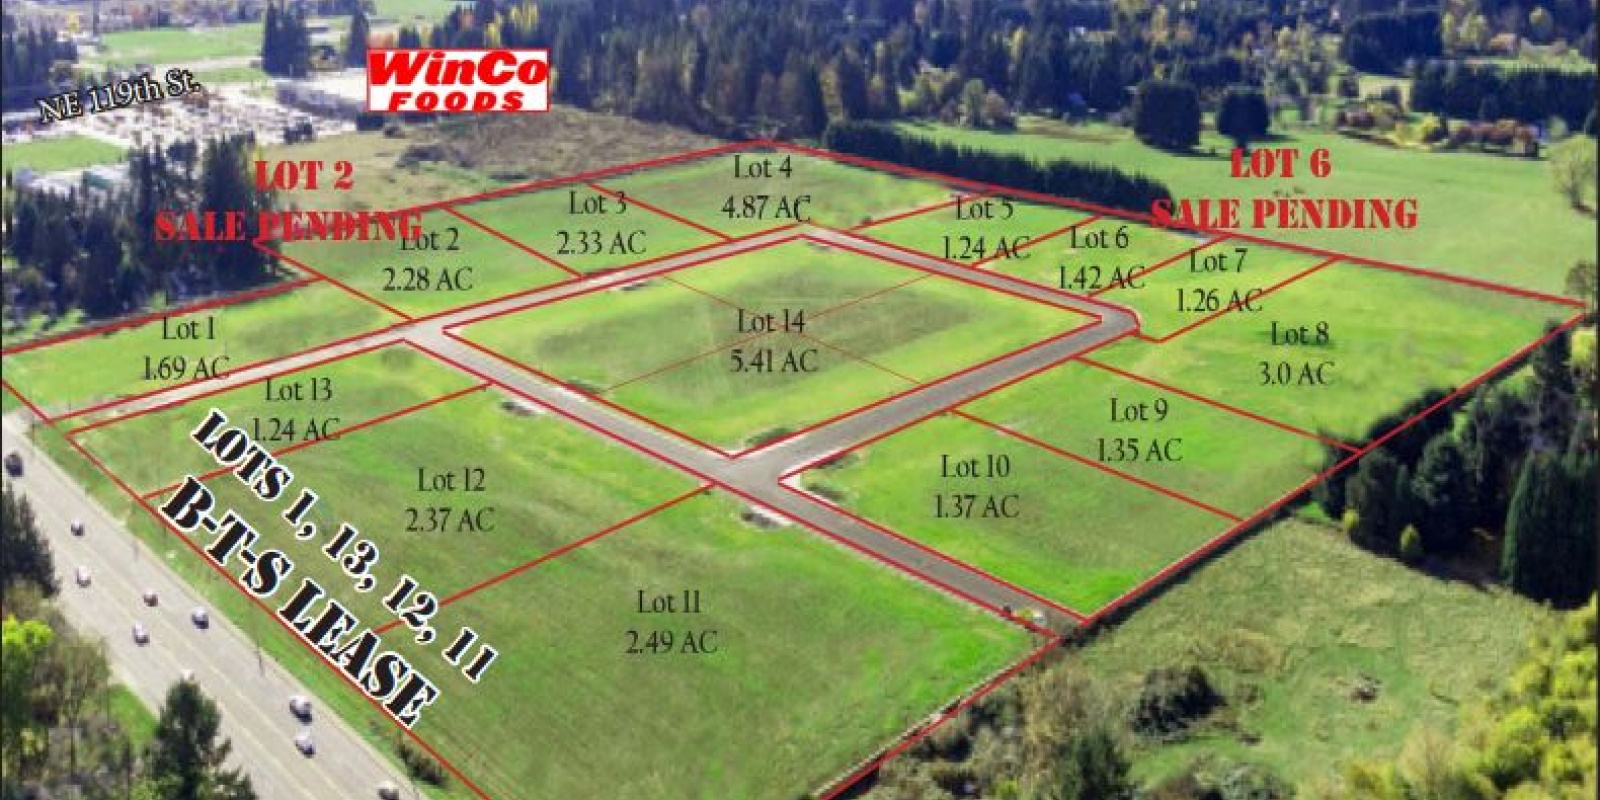 Hwy 503 at NE 125th St. Vancouver, WA 98662, ,Land,For Sale,GLENWOOD INDUSTRIAL PARK,Hwy 503 at NE 125th St. Vancouver, WA 98662,1326